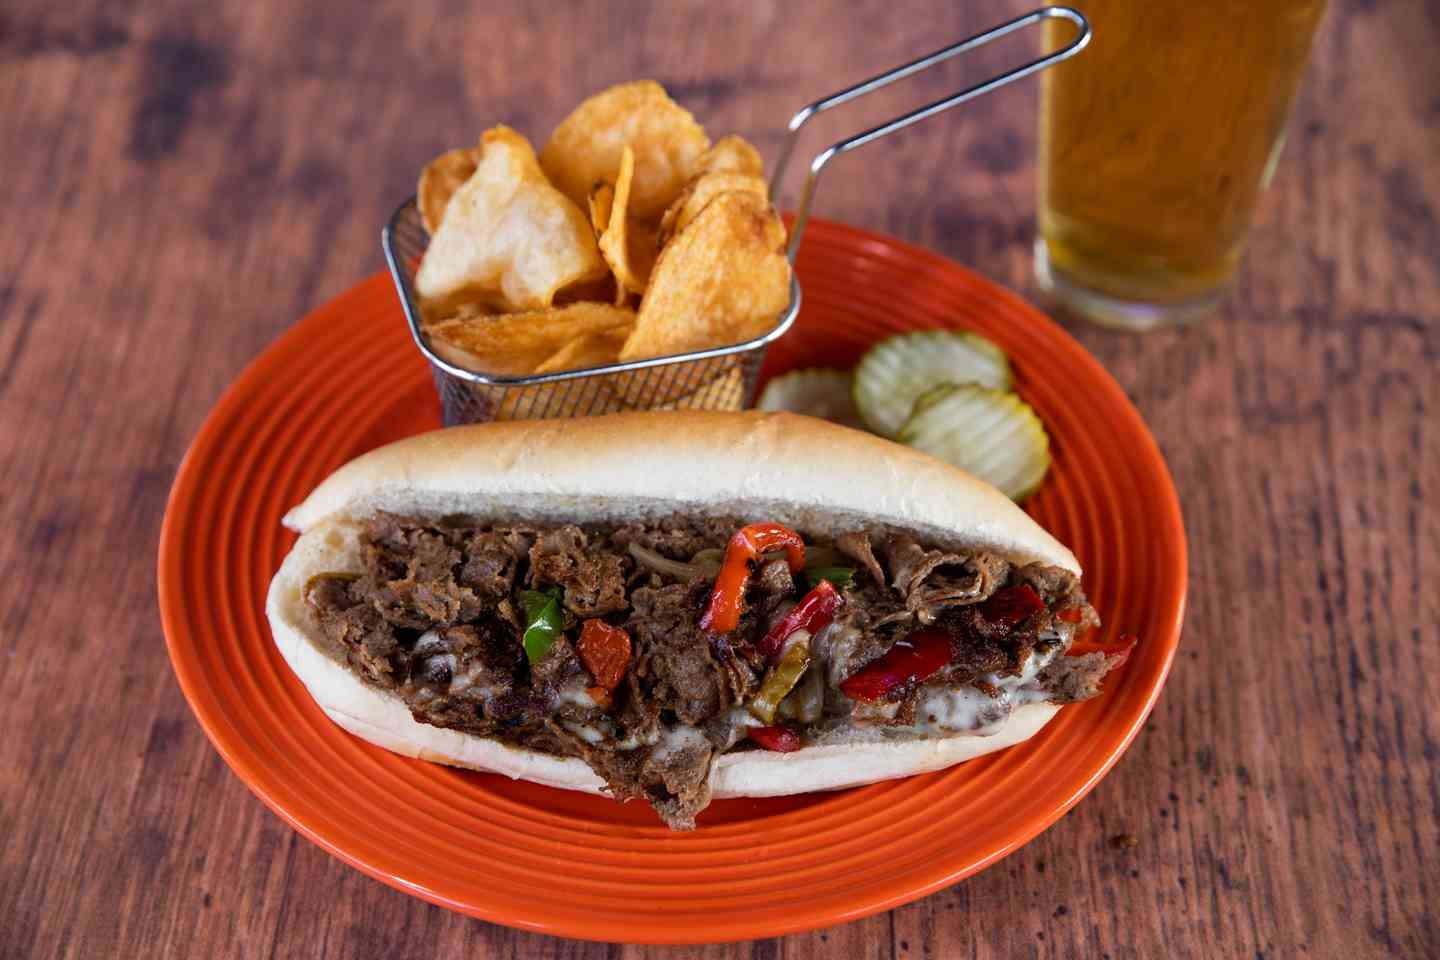 Steak Hoagie